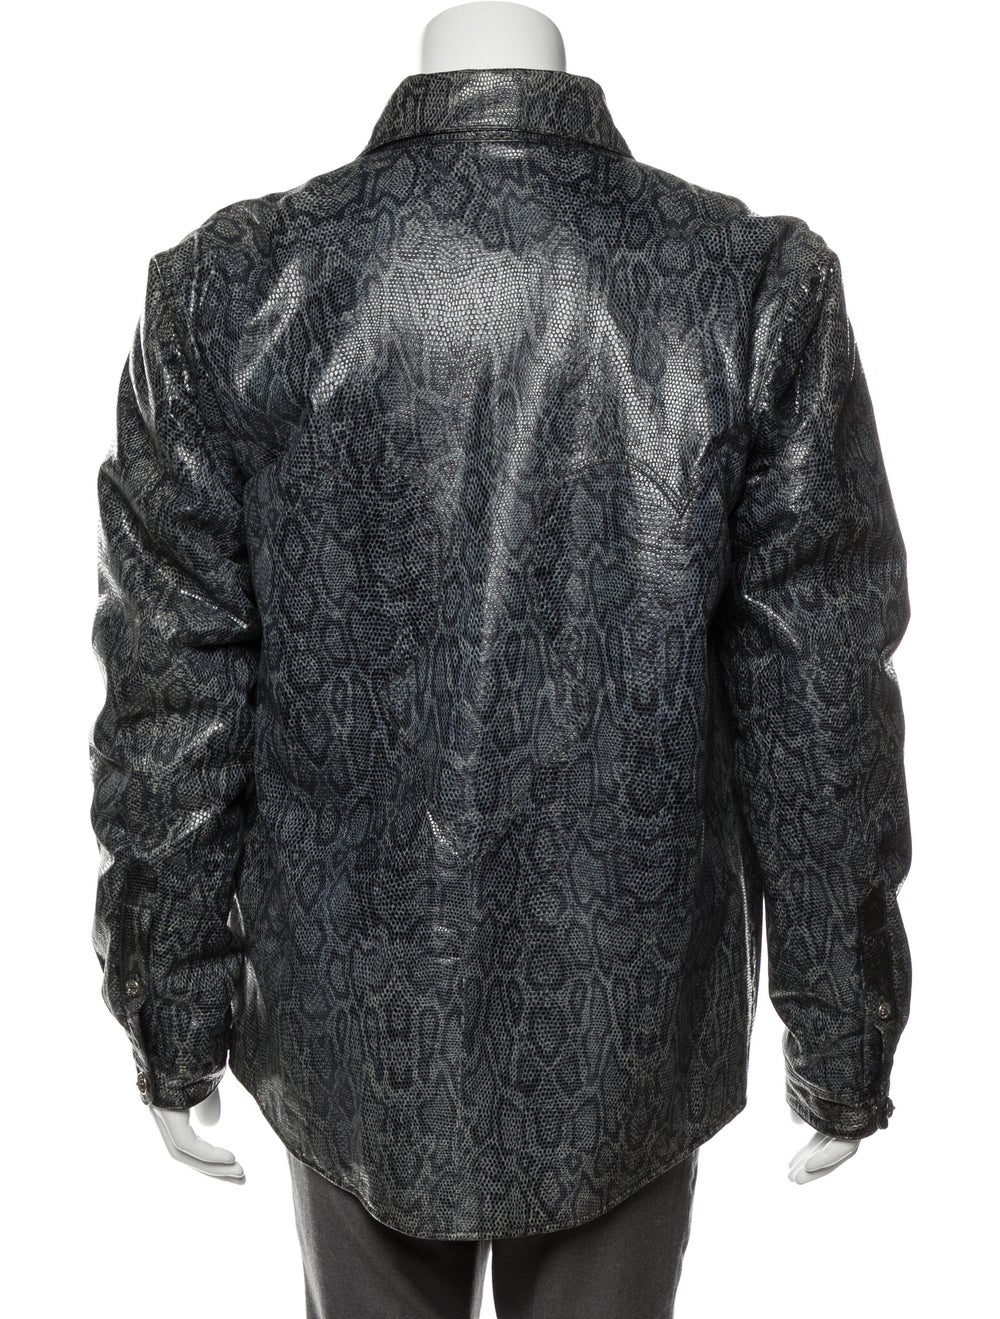 Chrome Hearts Snakeskin Button-Up Jacket blue - image 3